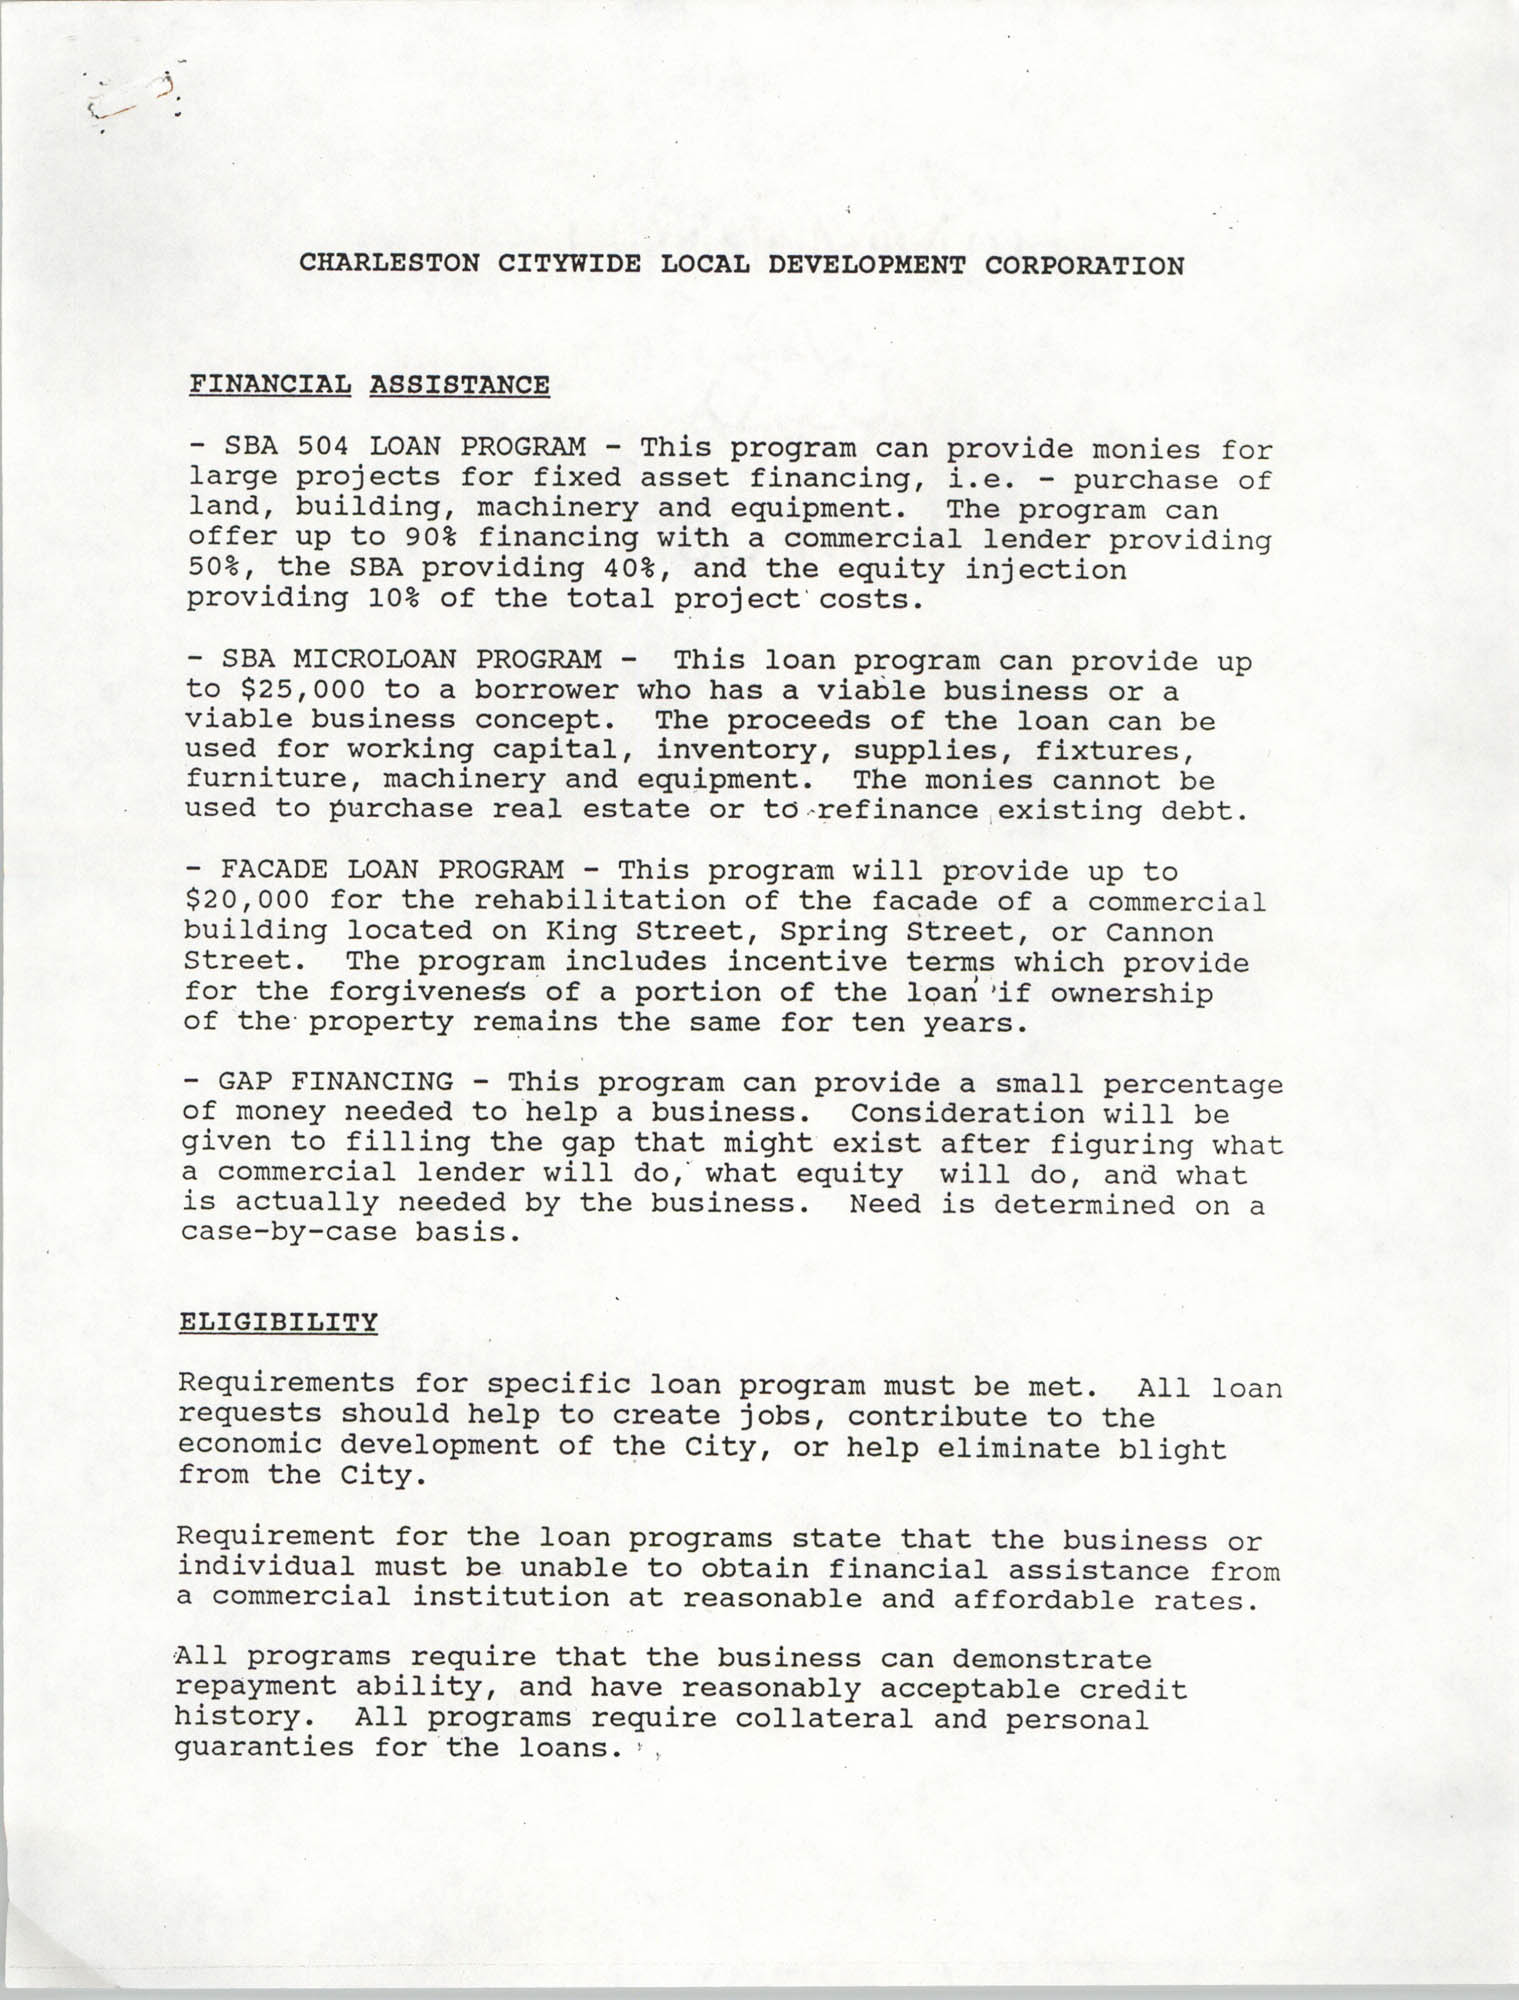 Charleston Citywide Local Development Corporation Charter, February 14, 1980